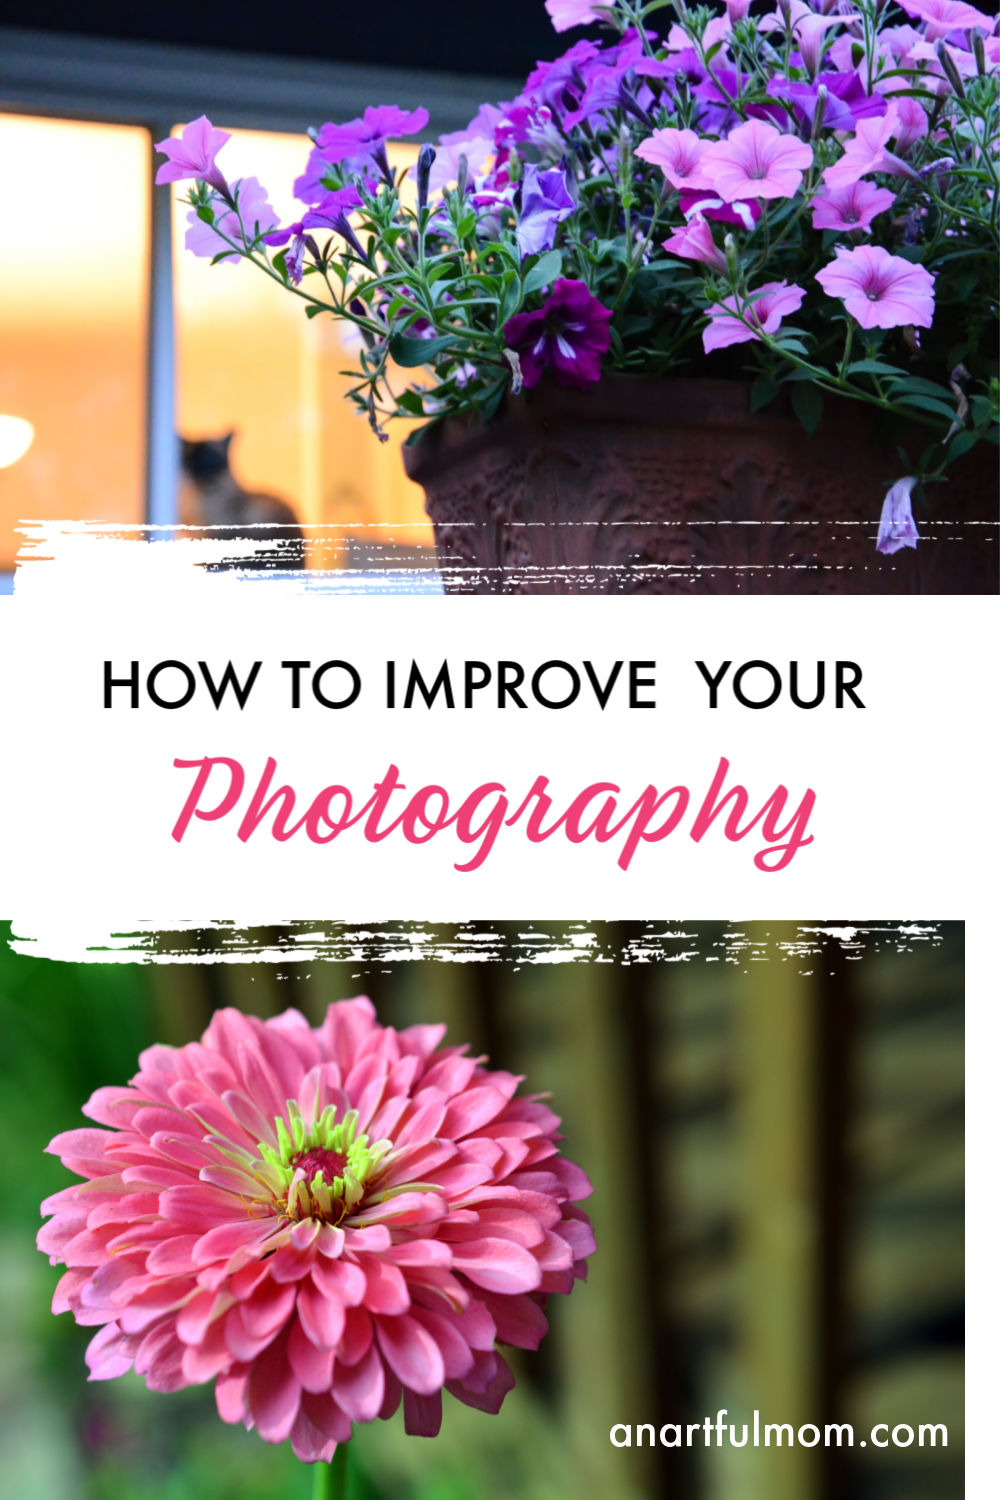 Photography tips for better photos